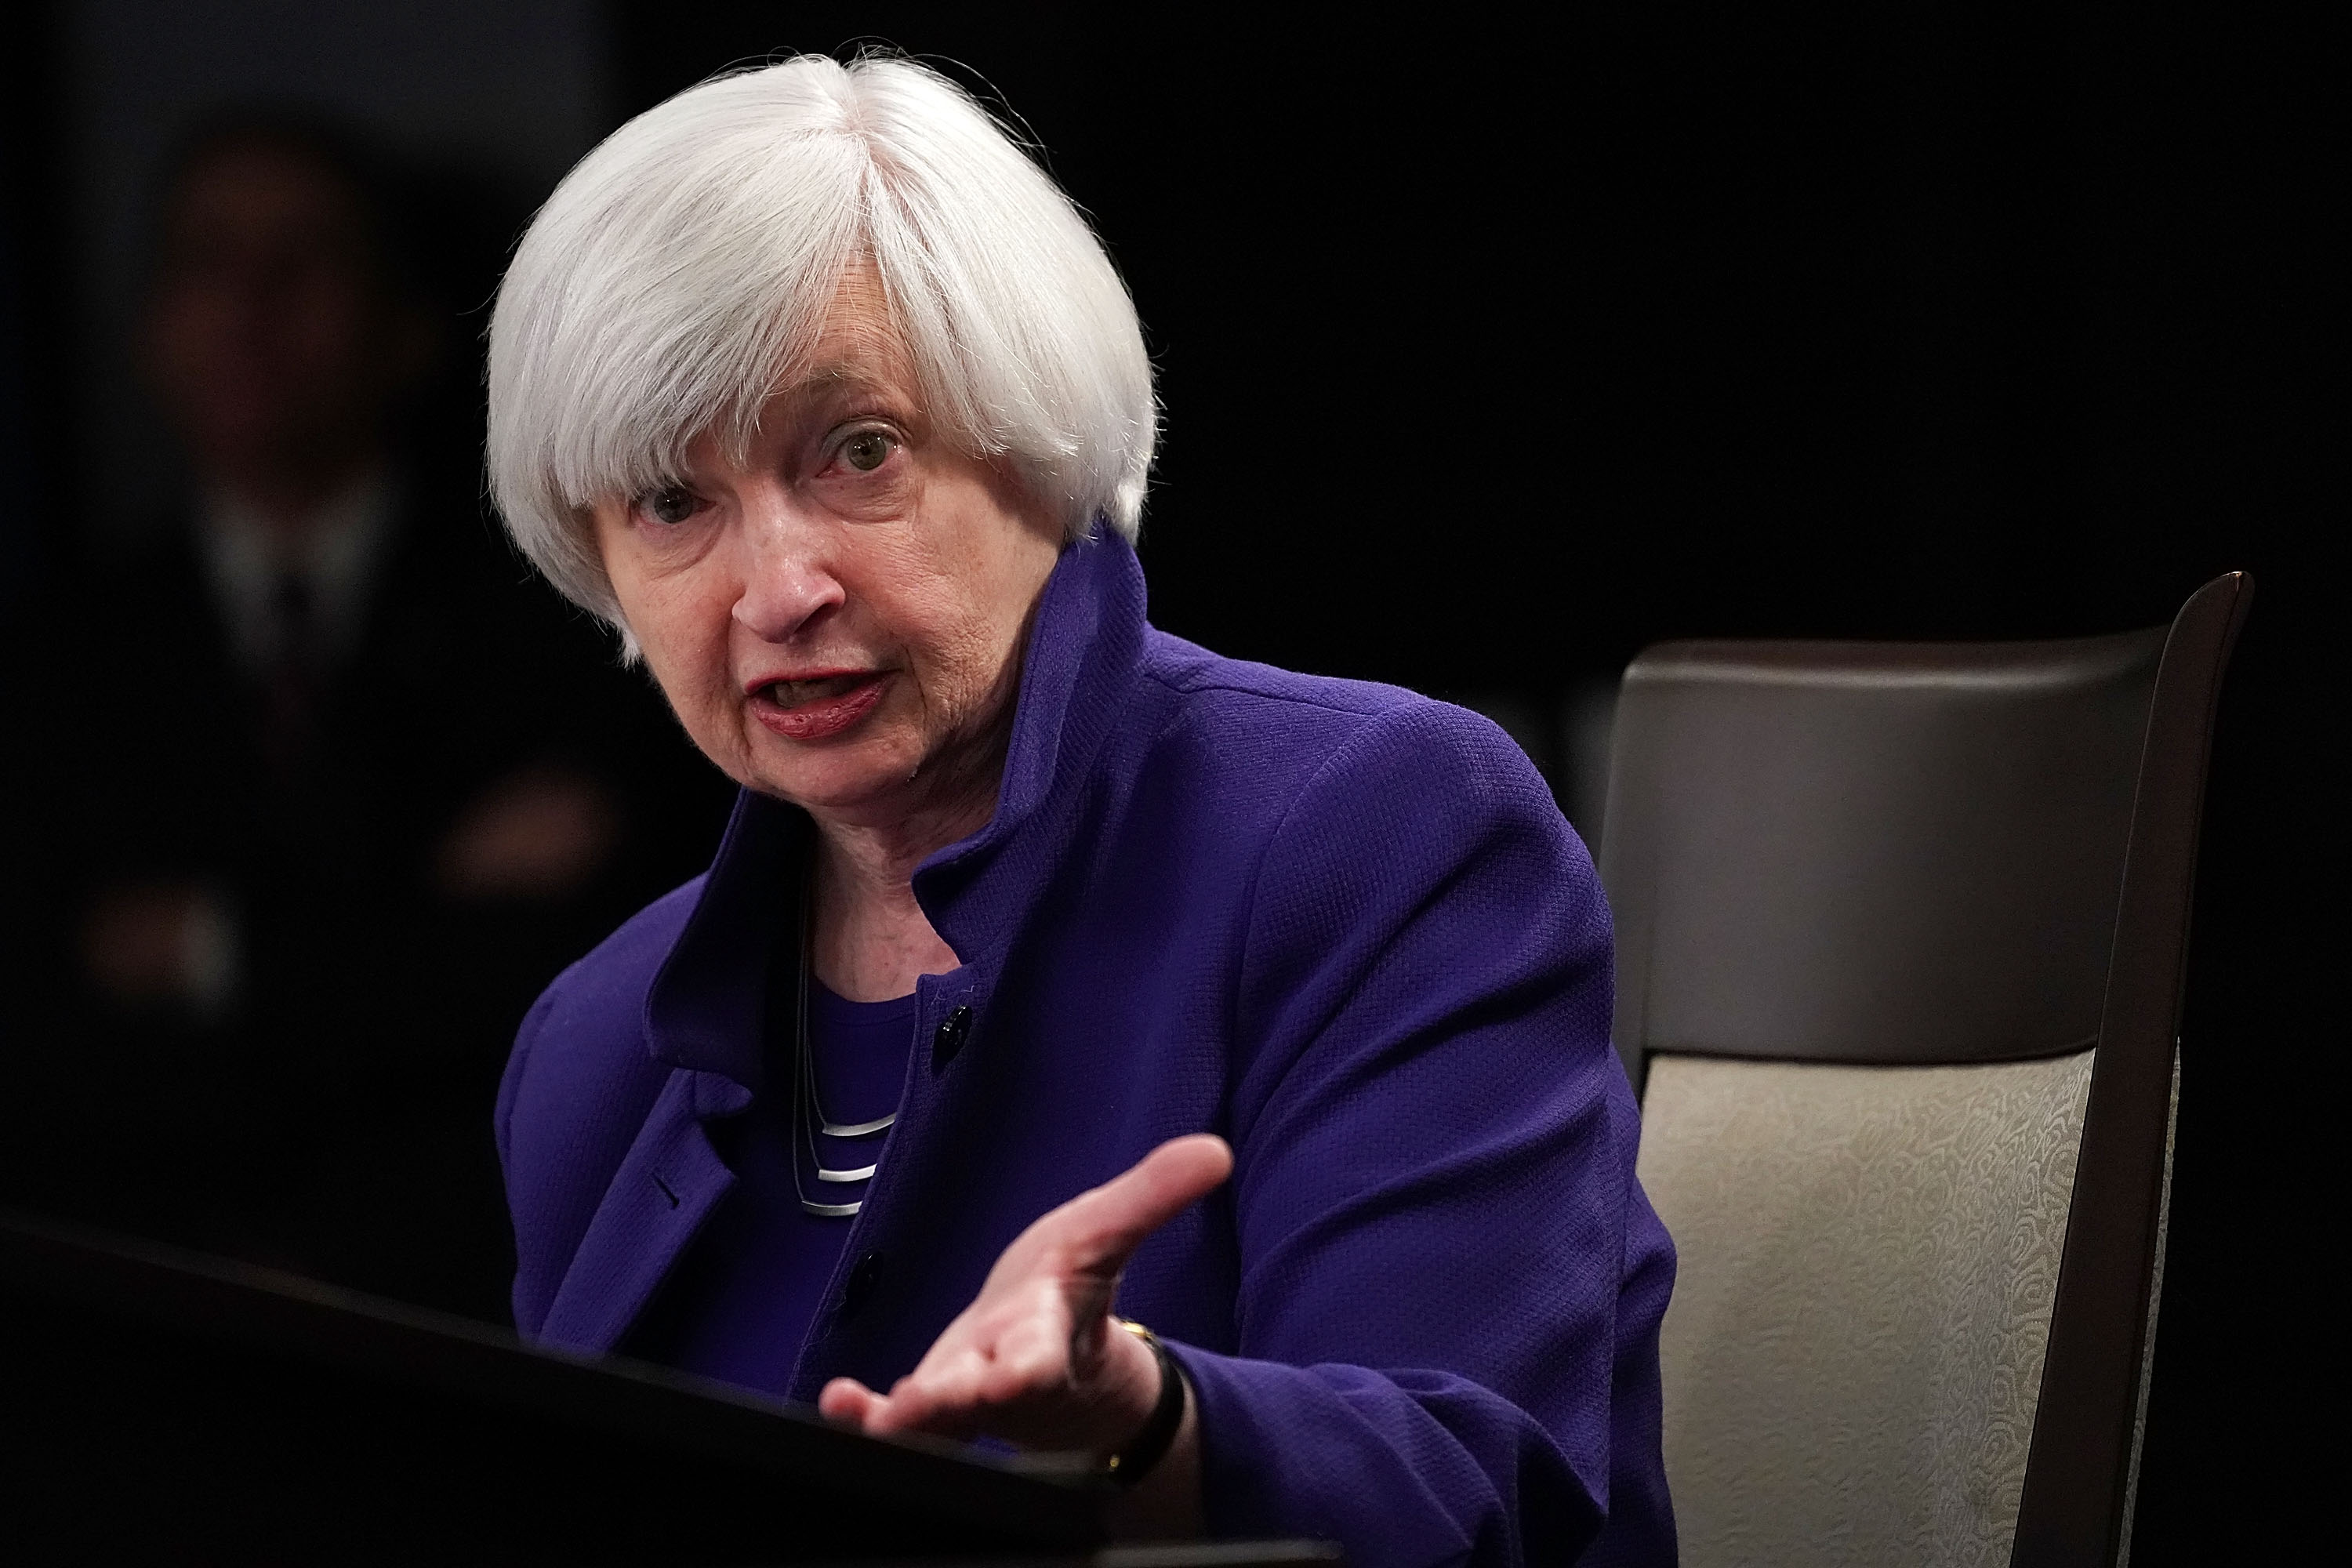 Janet Yellen seated and speaking on a stage.